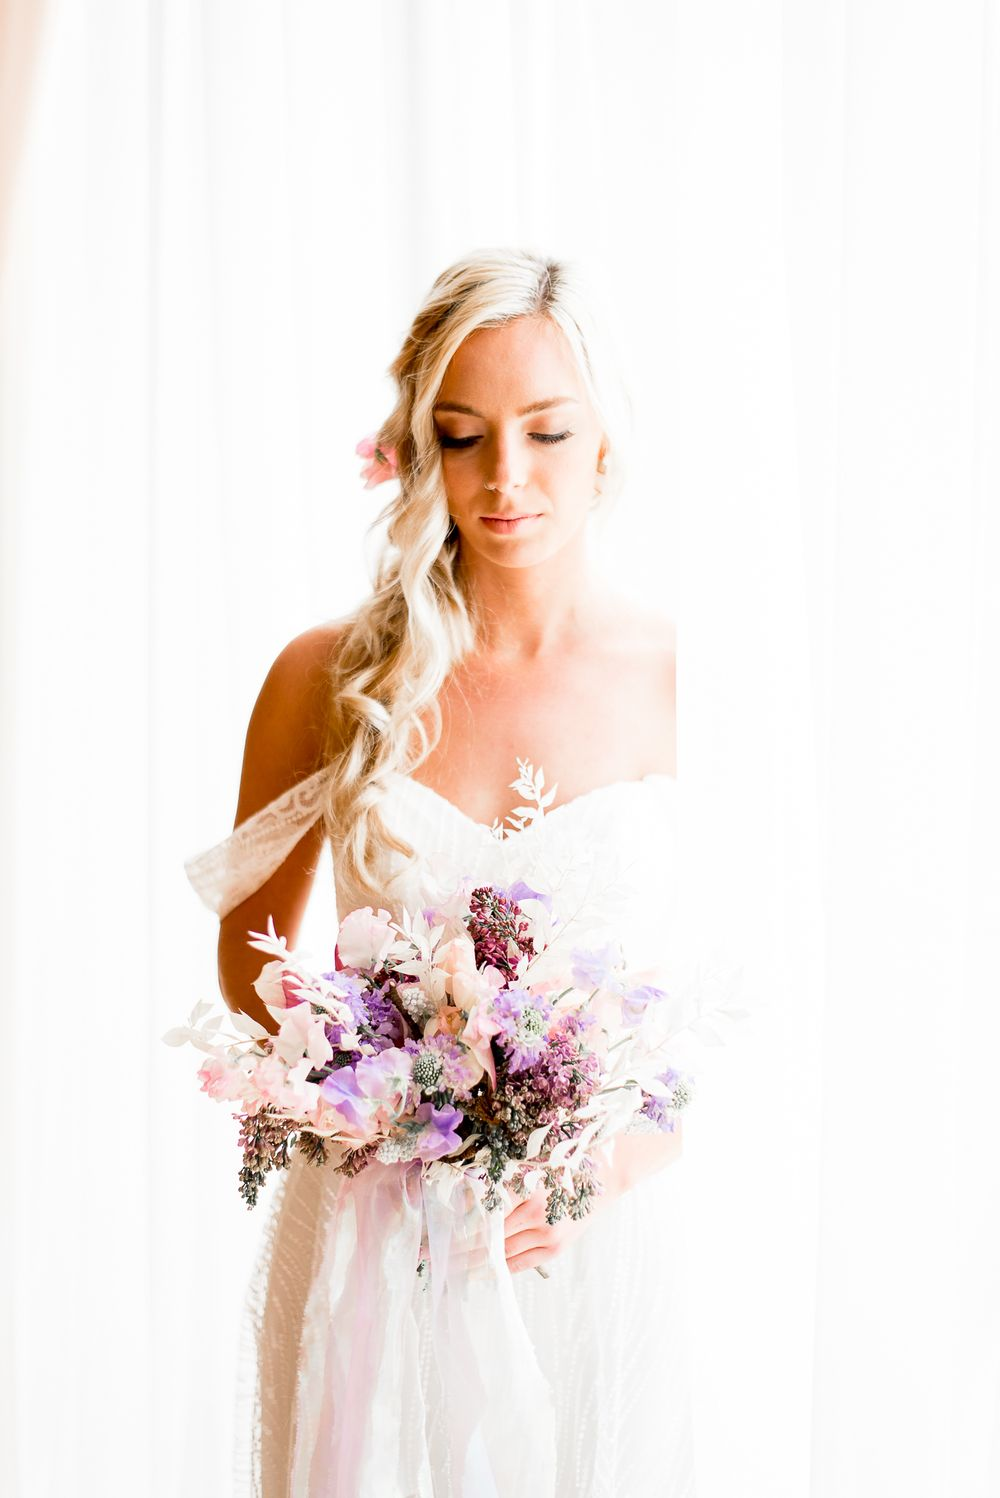 blonde bride with braided hair next to a window looking at purple and white wedding bouquet at The Center Cincinnati